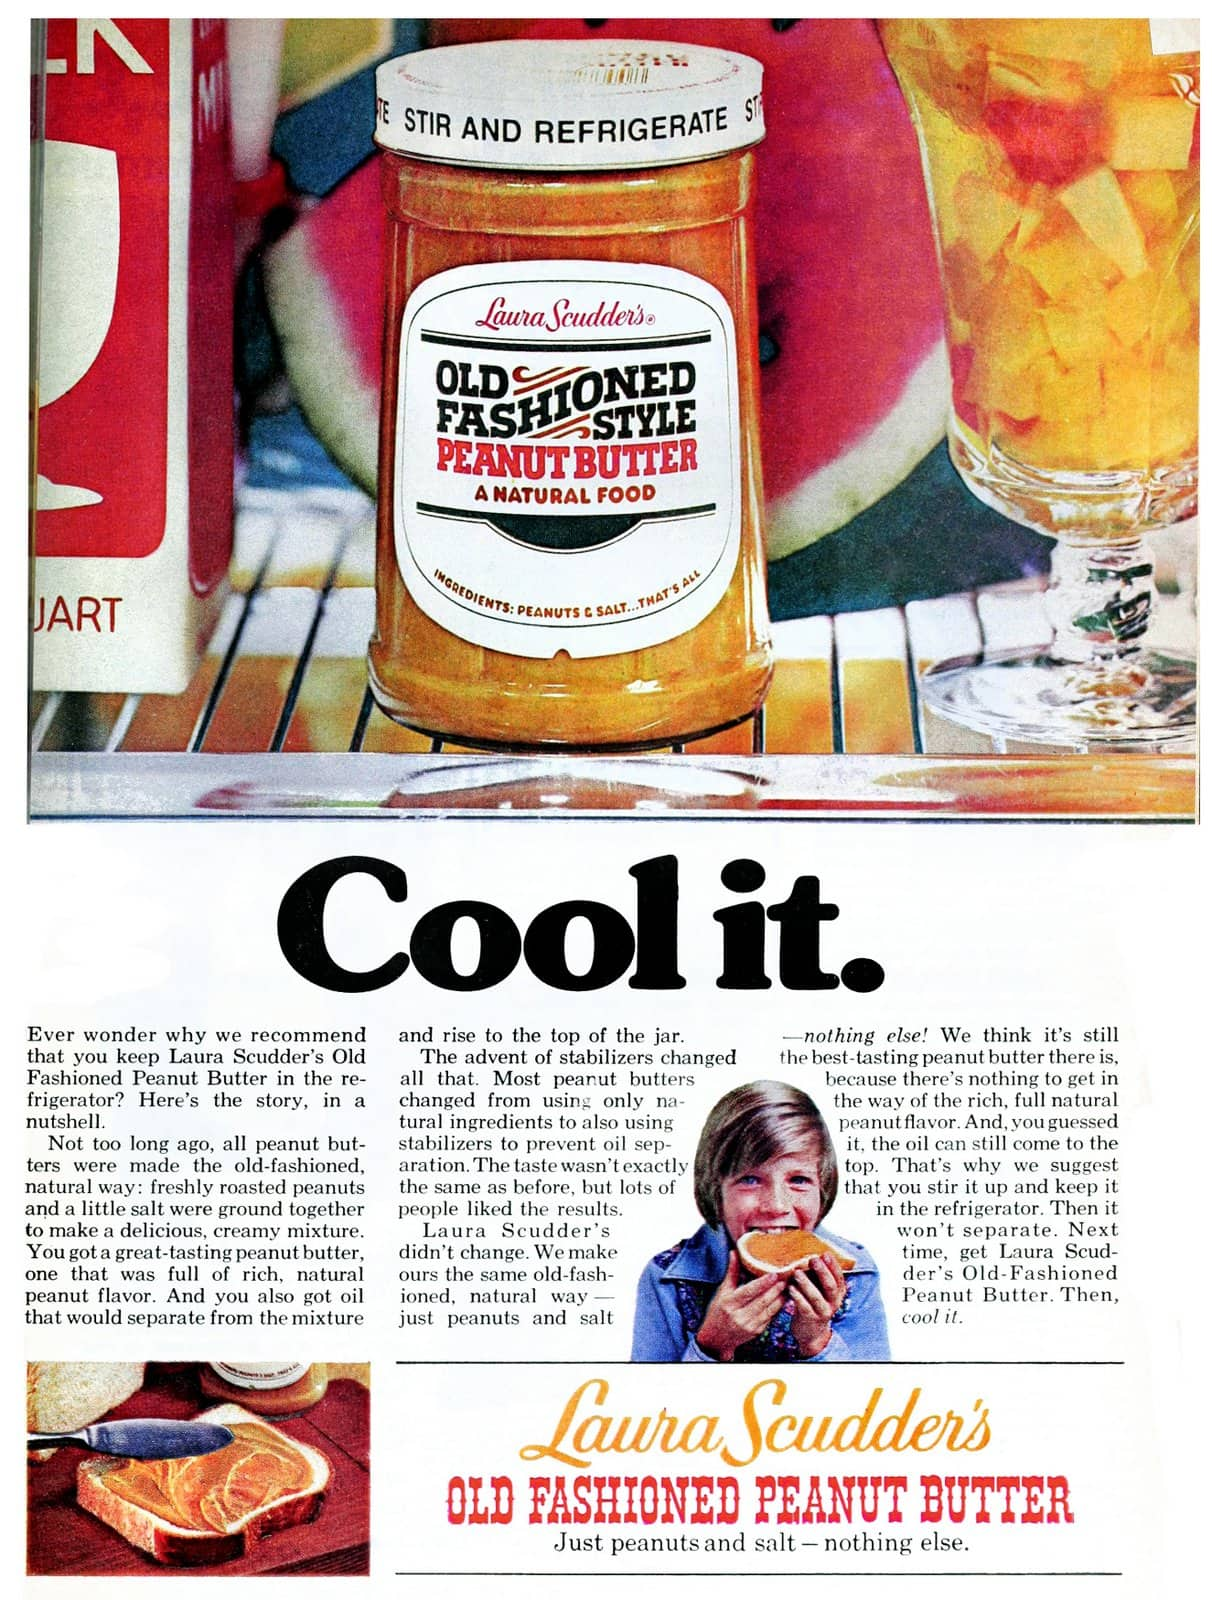 Laura Scudder's Old Fashioned Peanut Butter (1977)